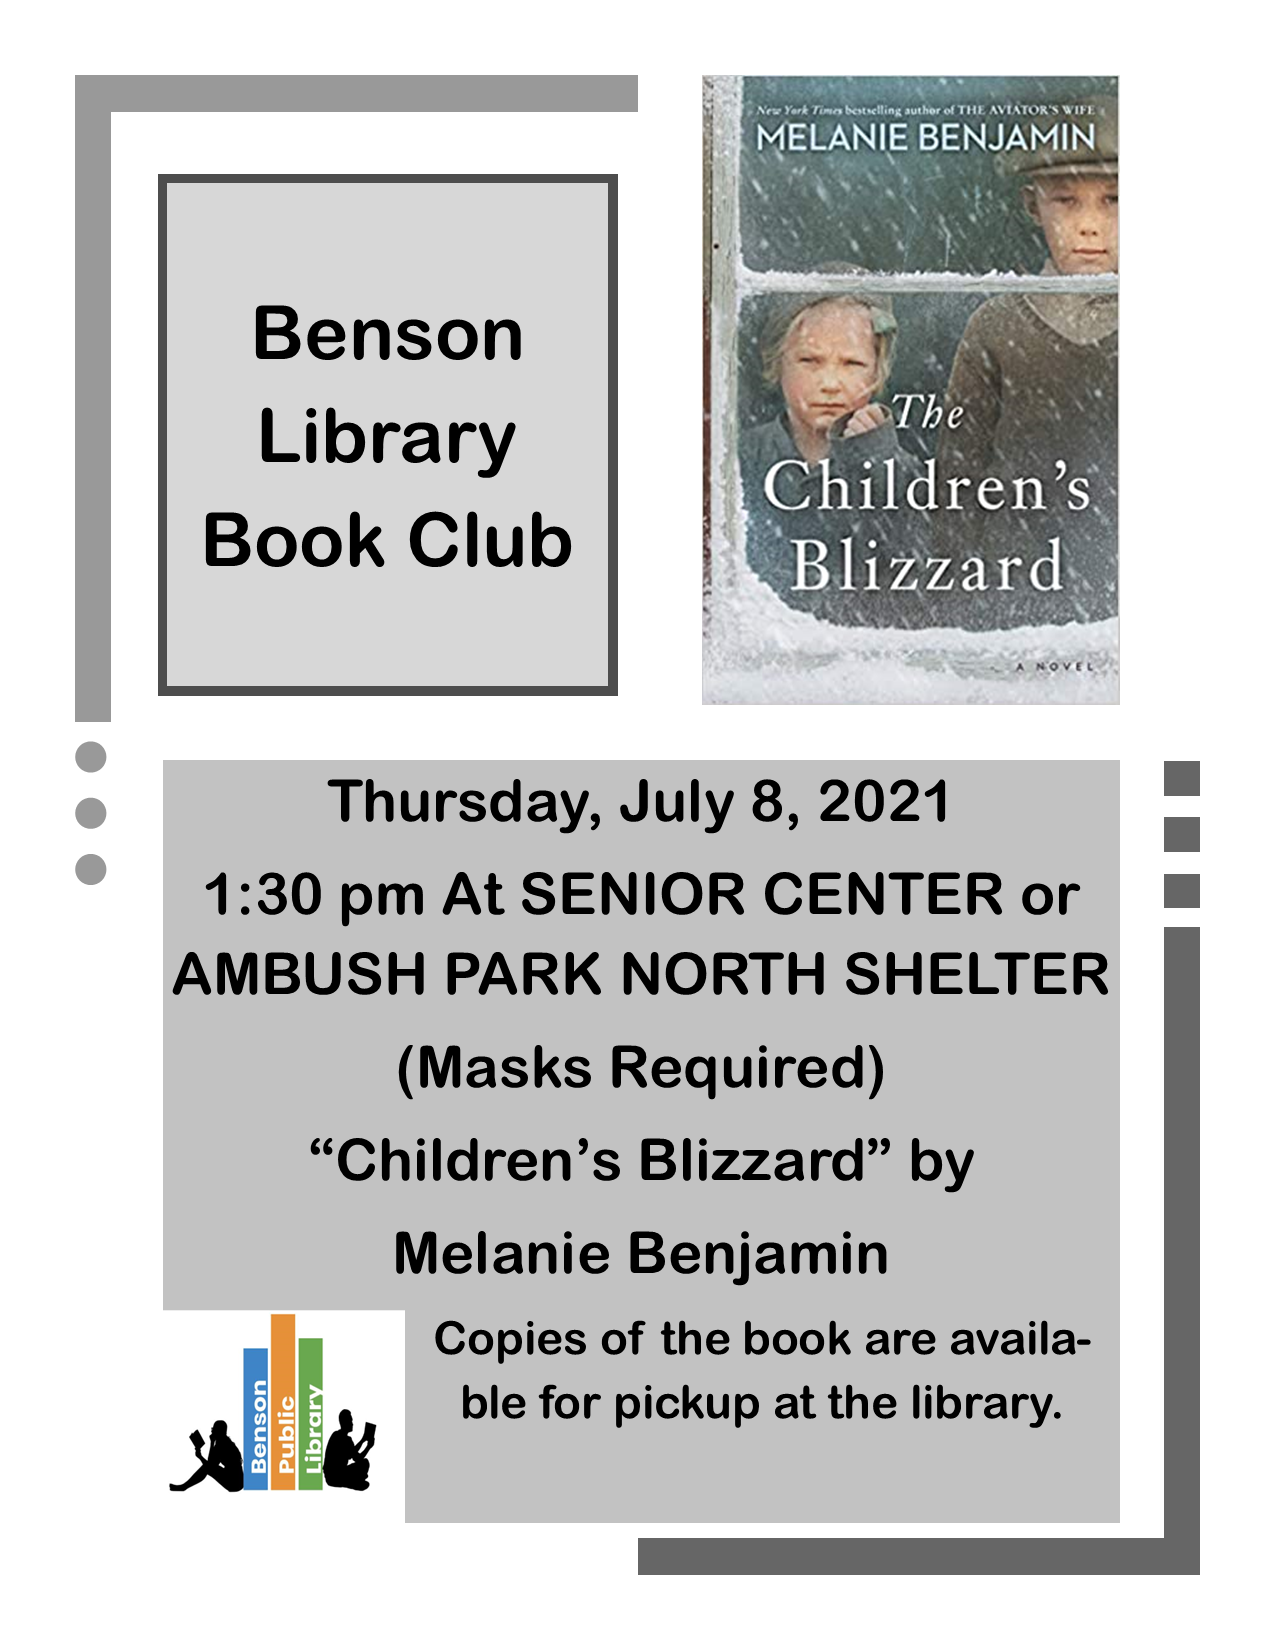 Join us on Thursday, July 8th at 1:30 for book club. We will be meeting either at the Senior Center or the North Shelter of Ambush Park. The book is 'The Children's Blizzard' by Melanie Benjamin. Copies are available for pick up at the library.